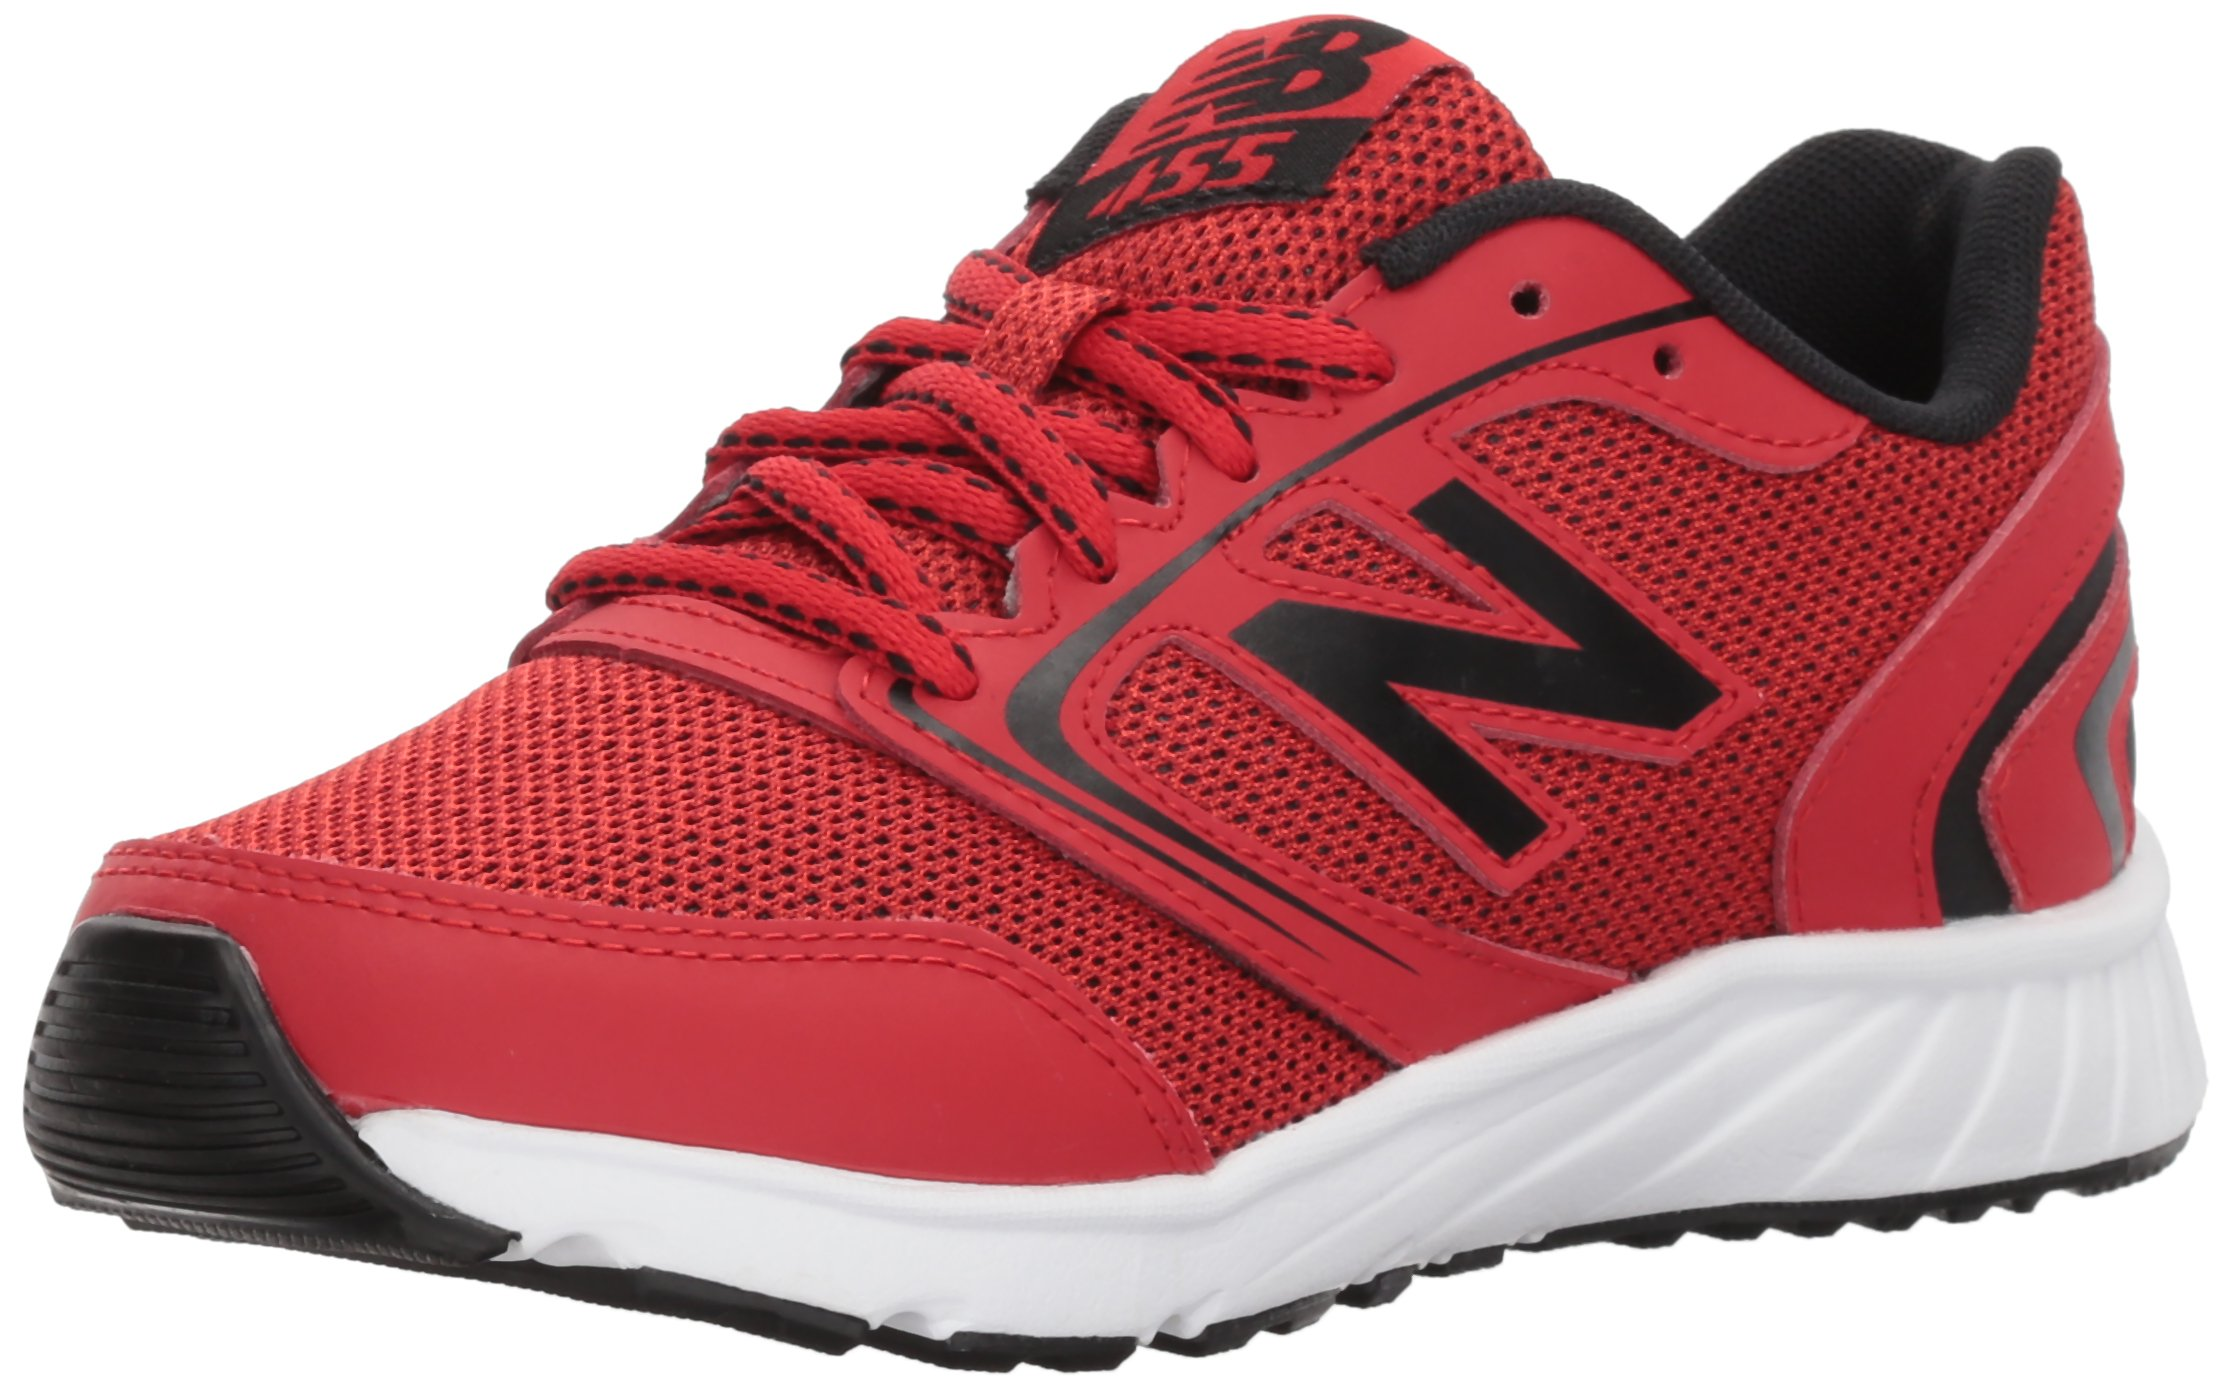 New Balance Boy's 455v1 Running Shoe, Team Red/Black, 1 M US Little Kid